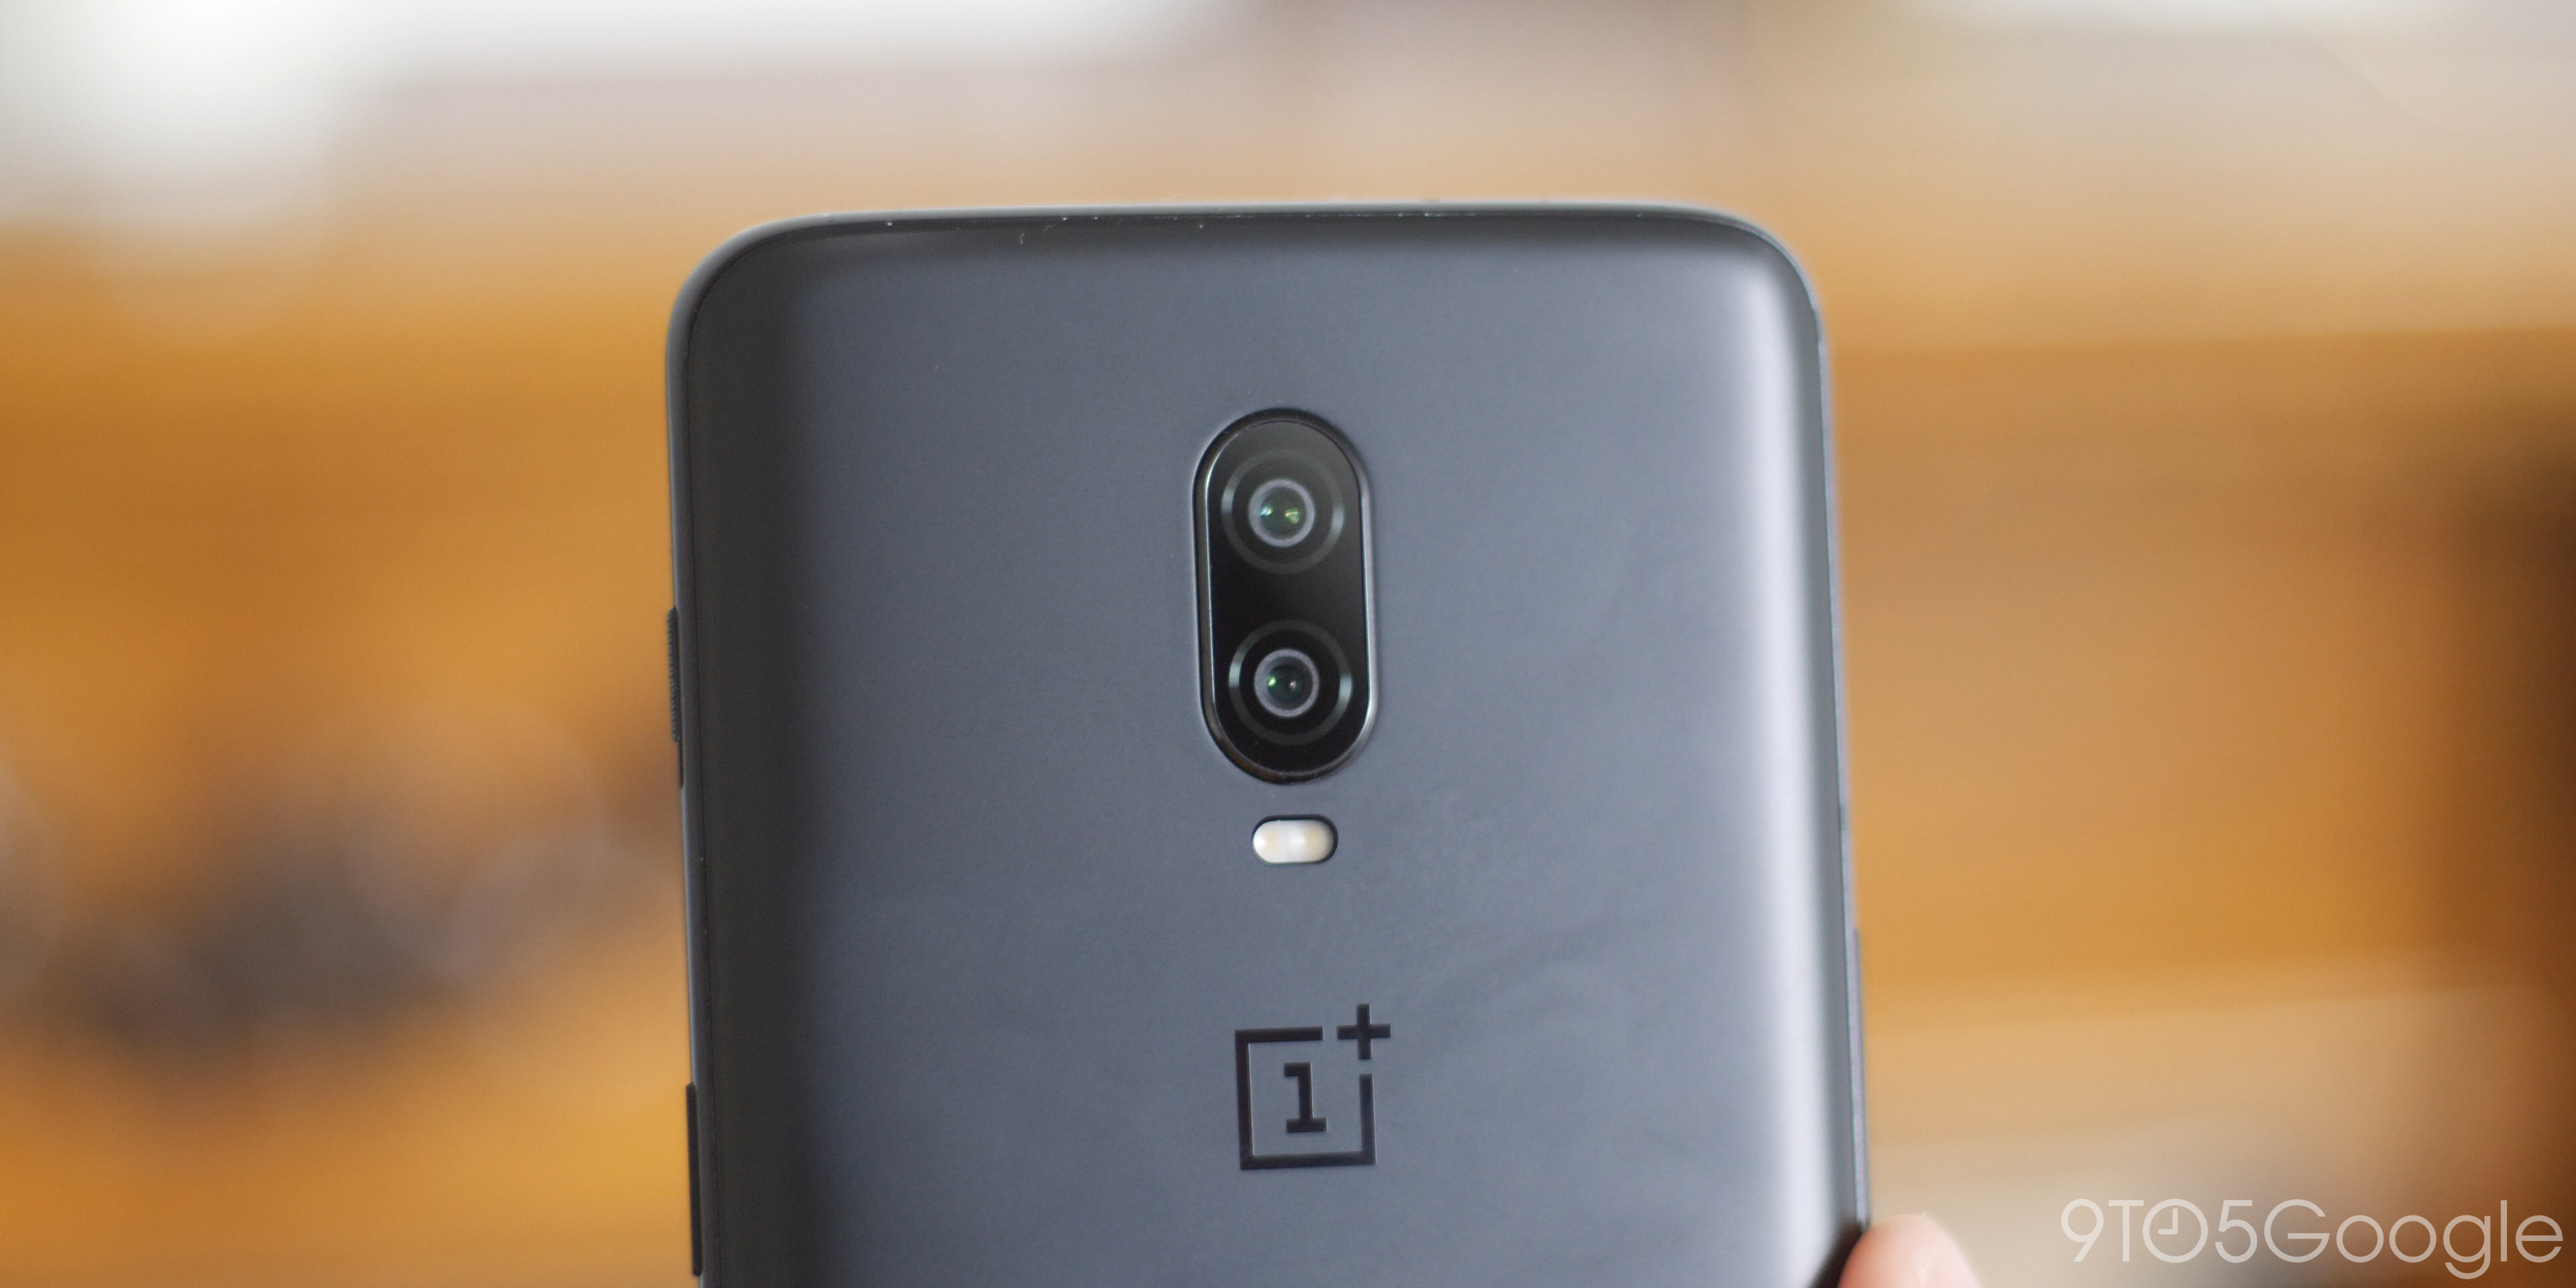 OnePlus 7 Pro confirmed to have faster UFS 3 0 storage - 9to5Google